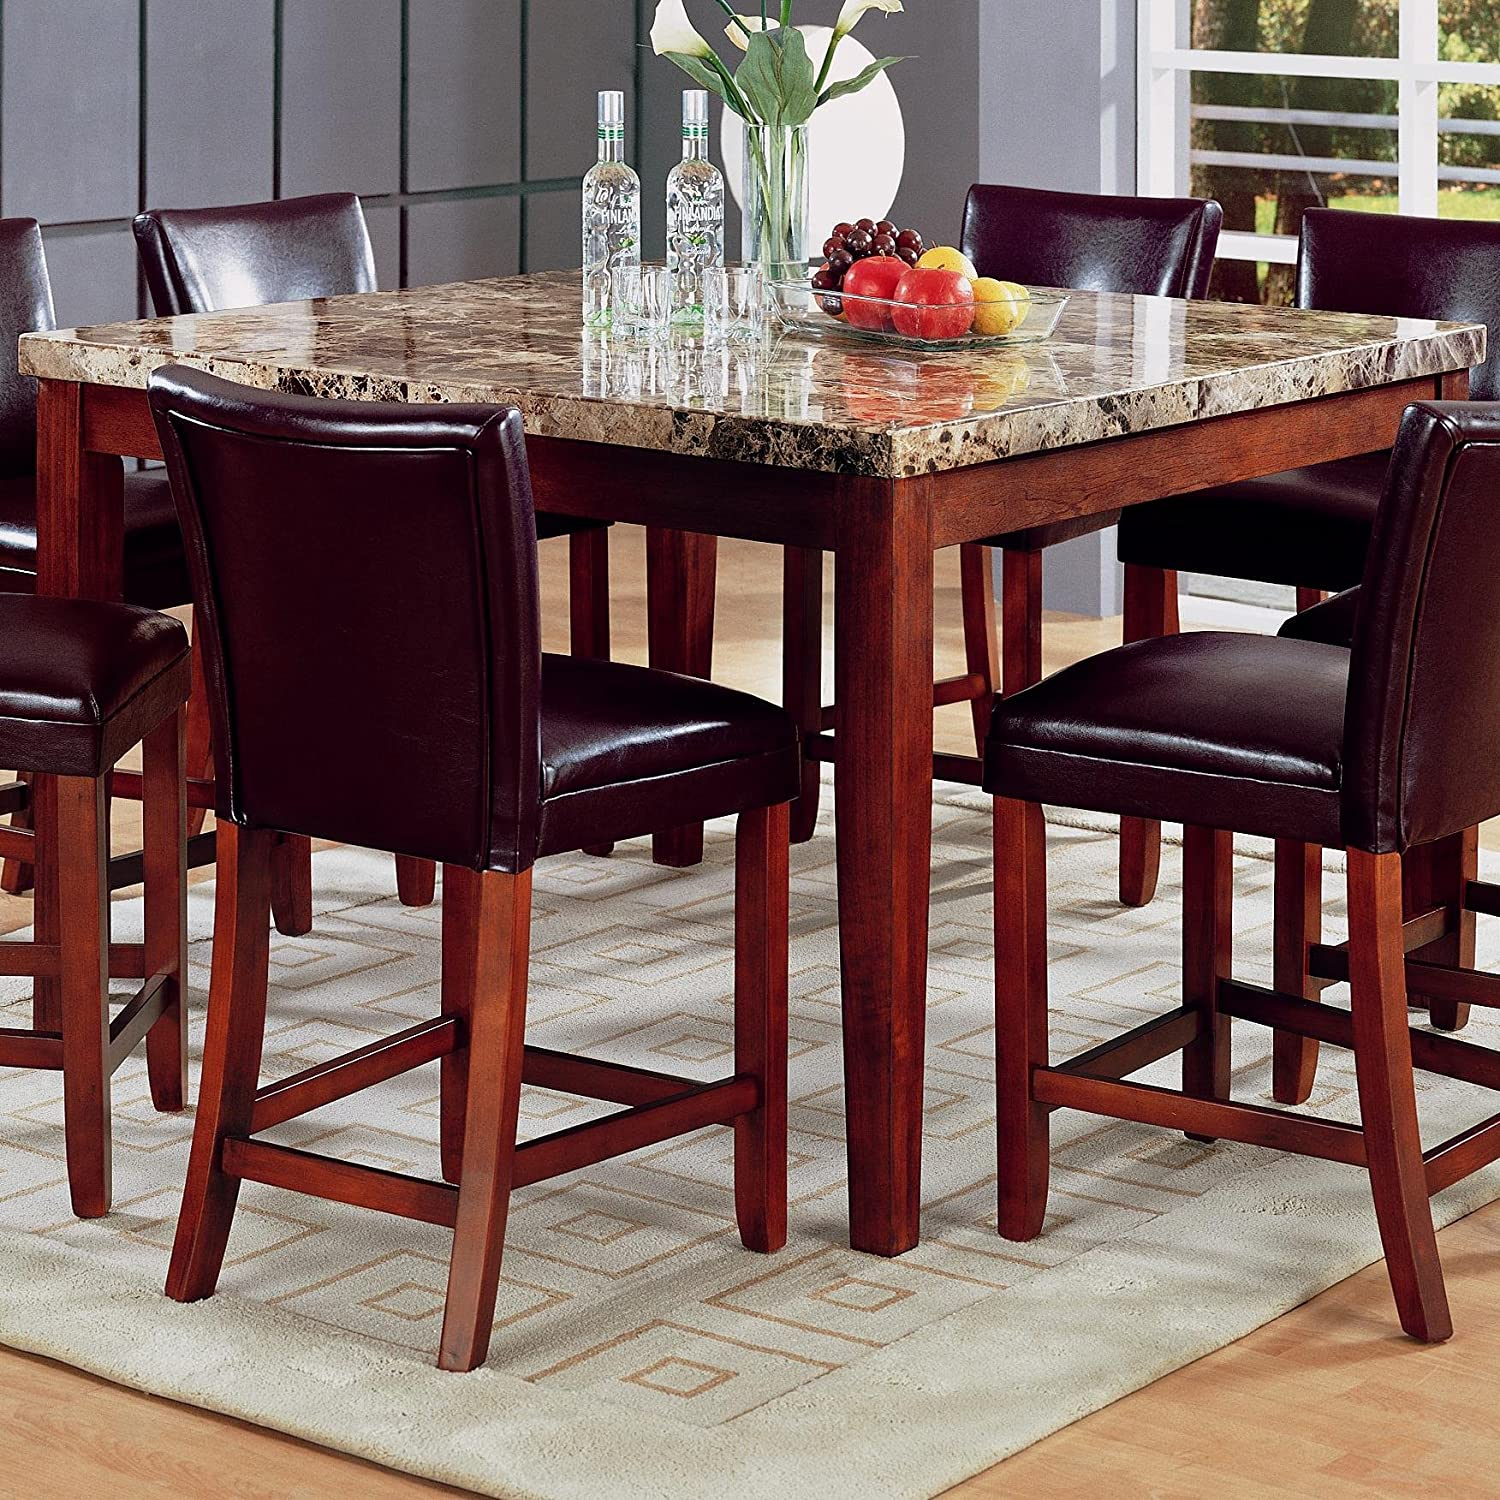 Coaster Classy Marble Top Square Dining Table 36 Inch Height Tables